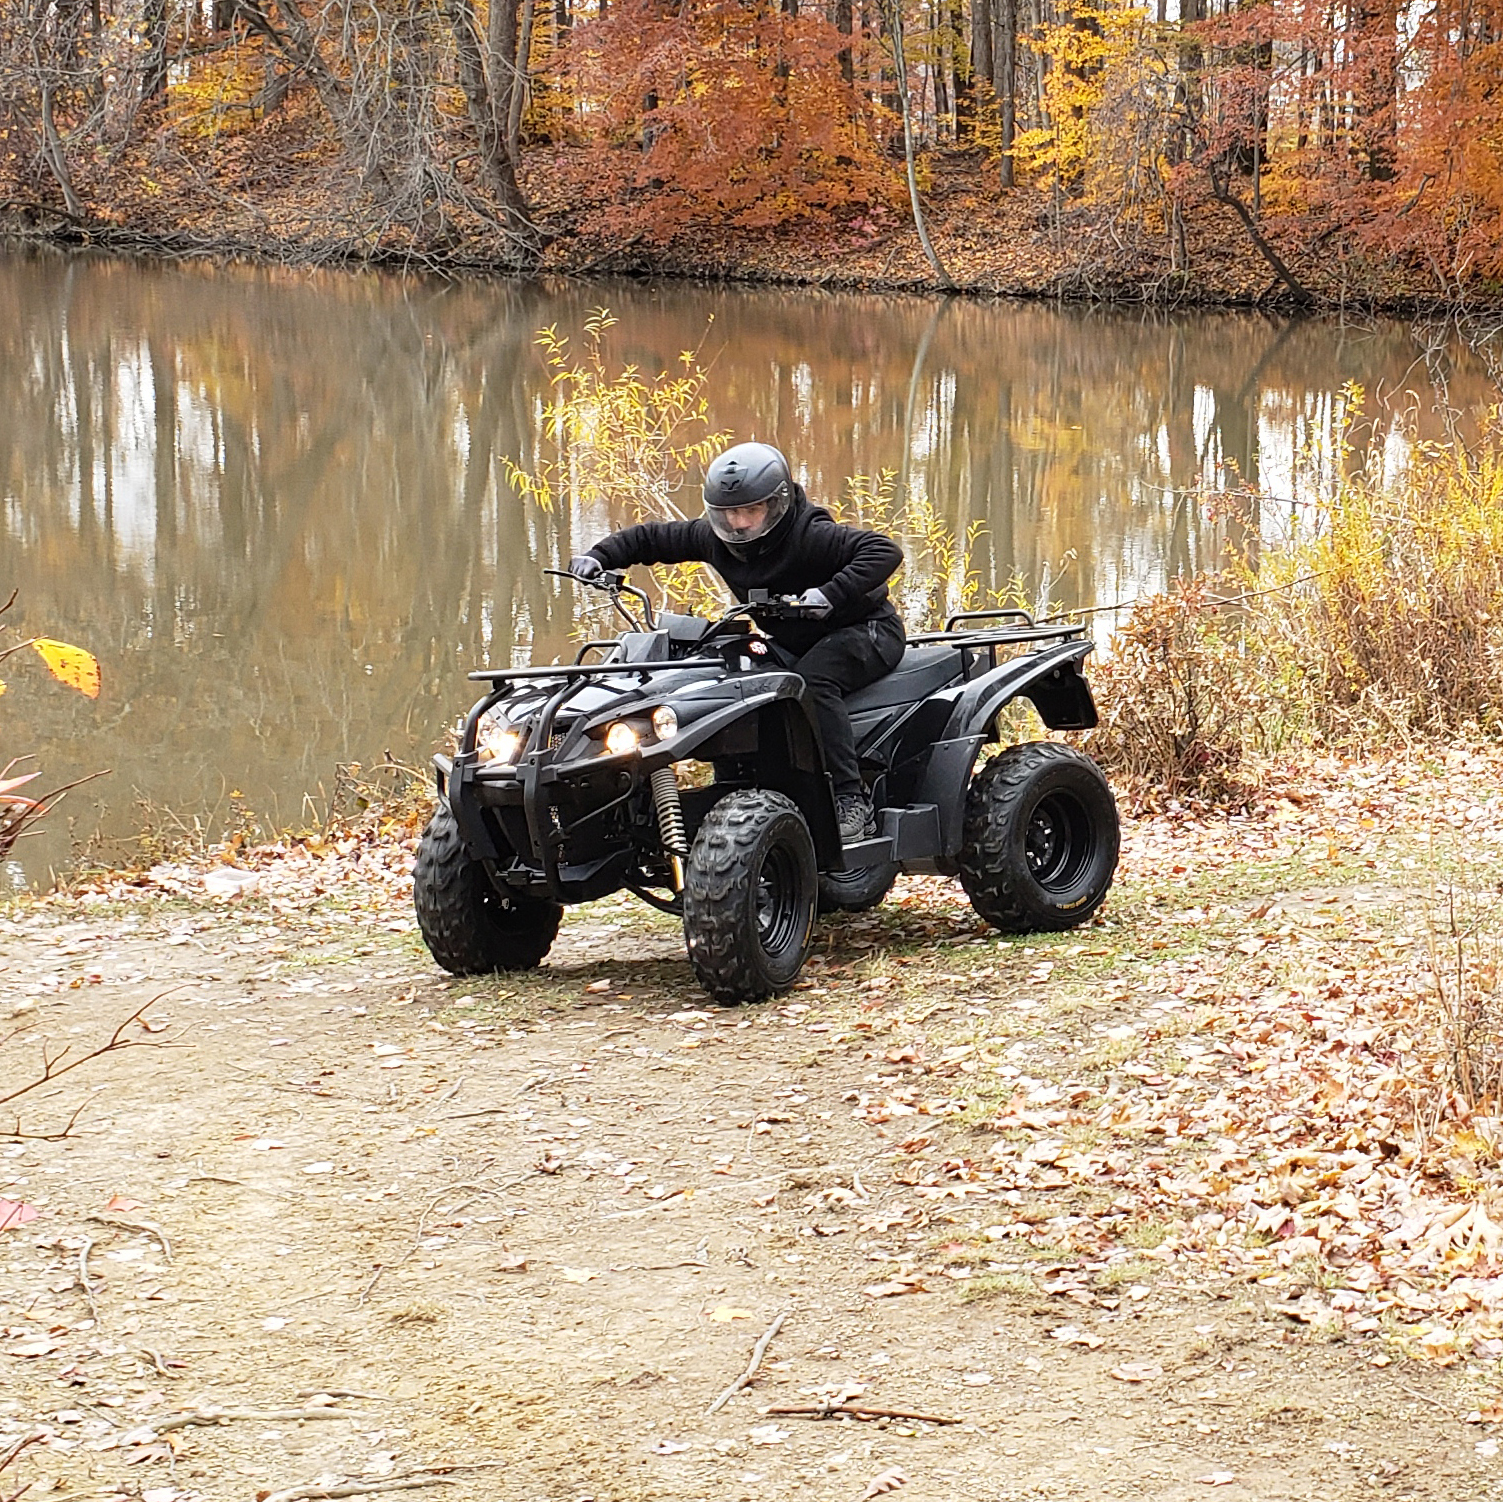 DRR USA Electric ATV in Fall by Lake Environmentally Friendly.jpg